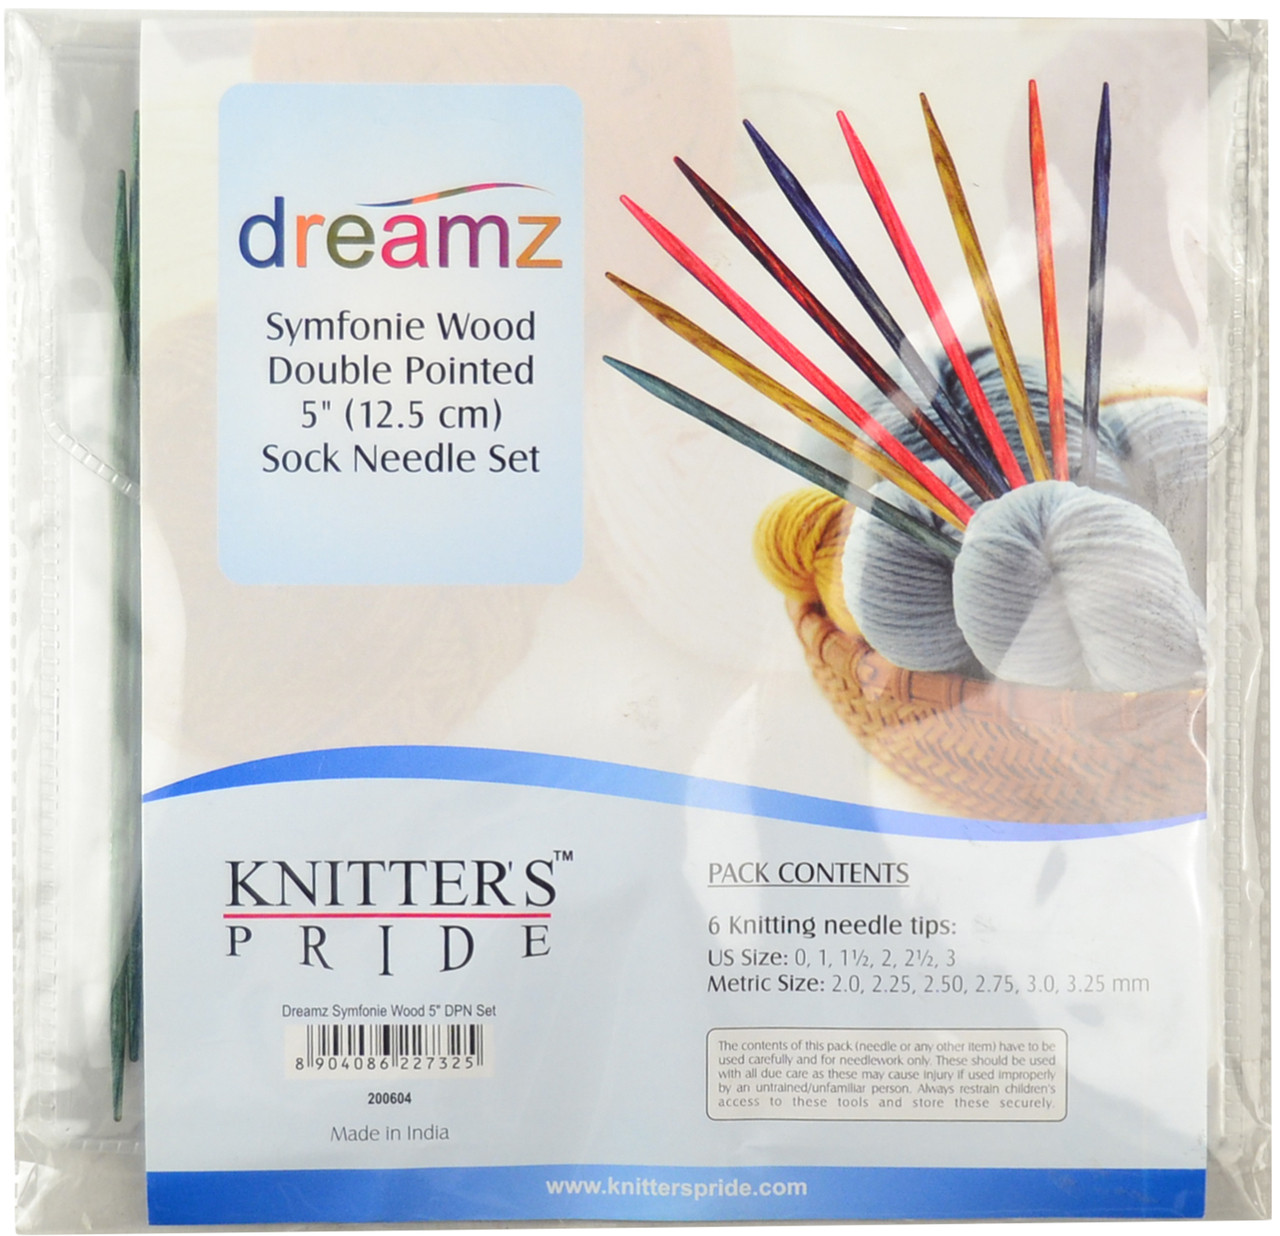 Knitter S Pride Symfonie Dreamz 30 Pack 5 Double Pointed Knitting Needles Set Free Shipping At Yarn Canada